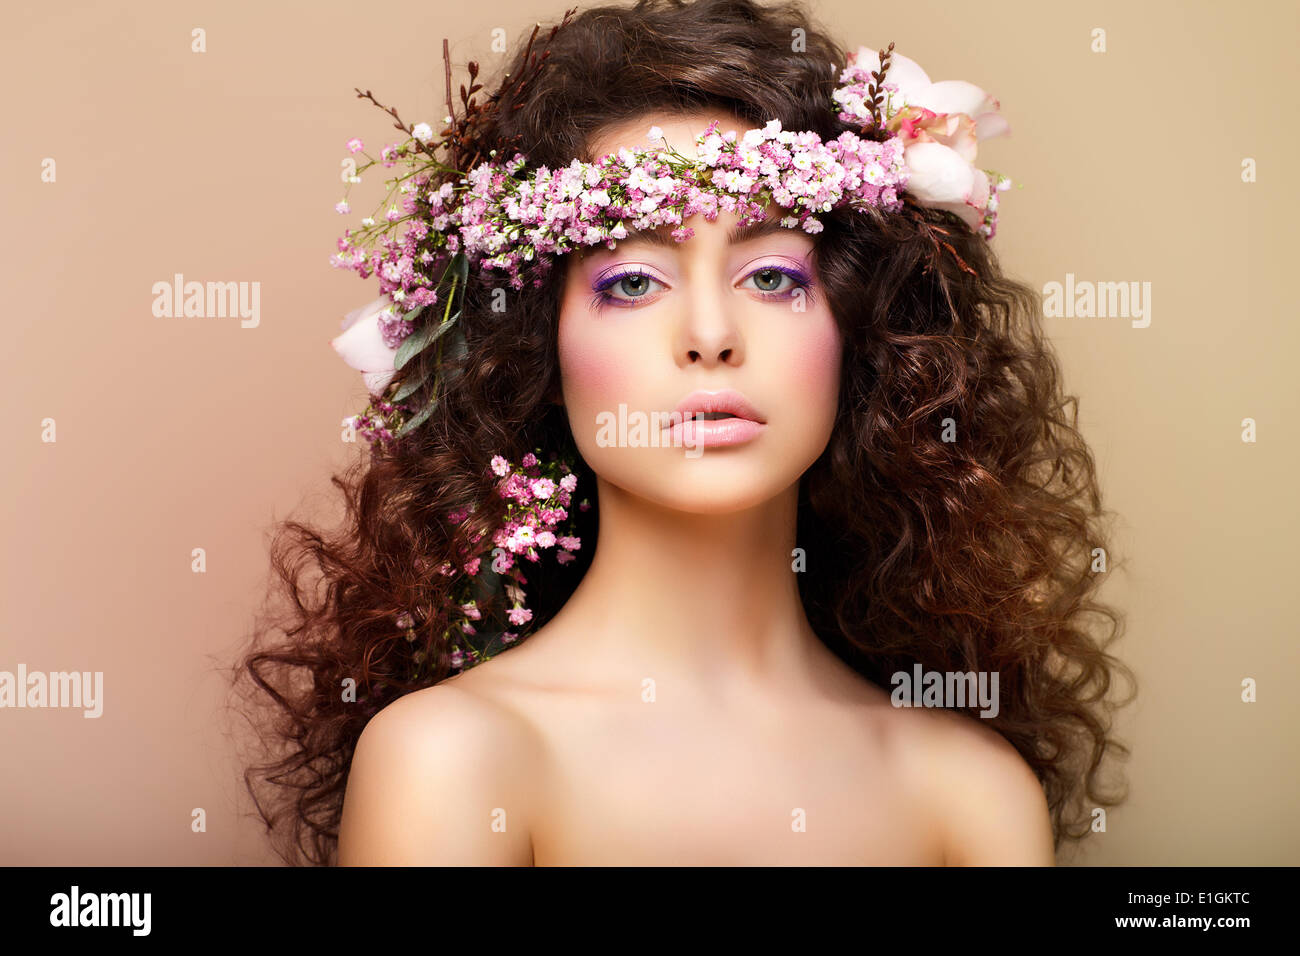 Purity. Freshness. Virginity. Attractive Charming Woman with Frizzy Hairs - Stock Image